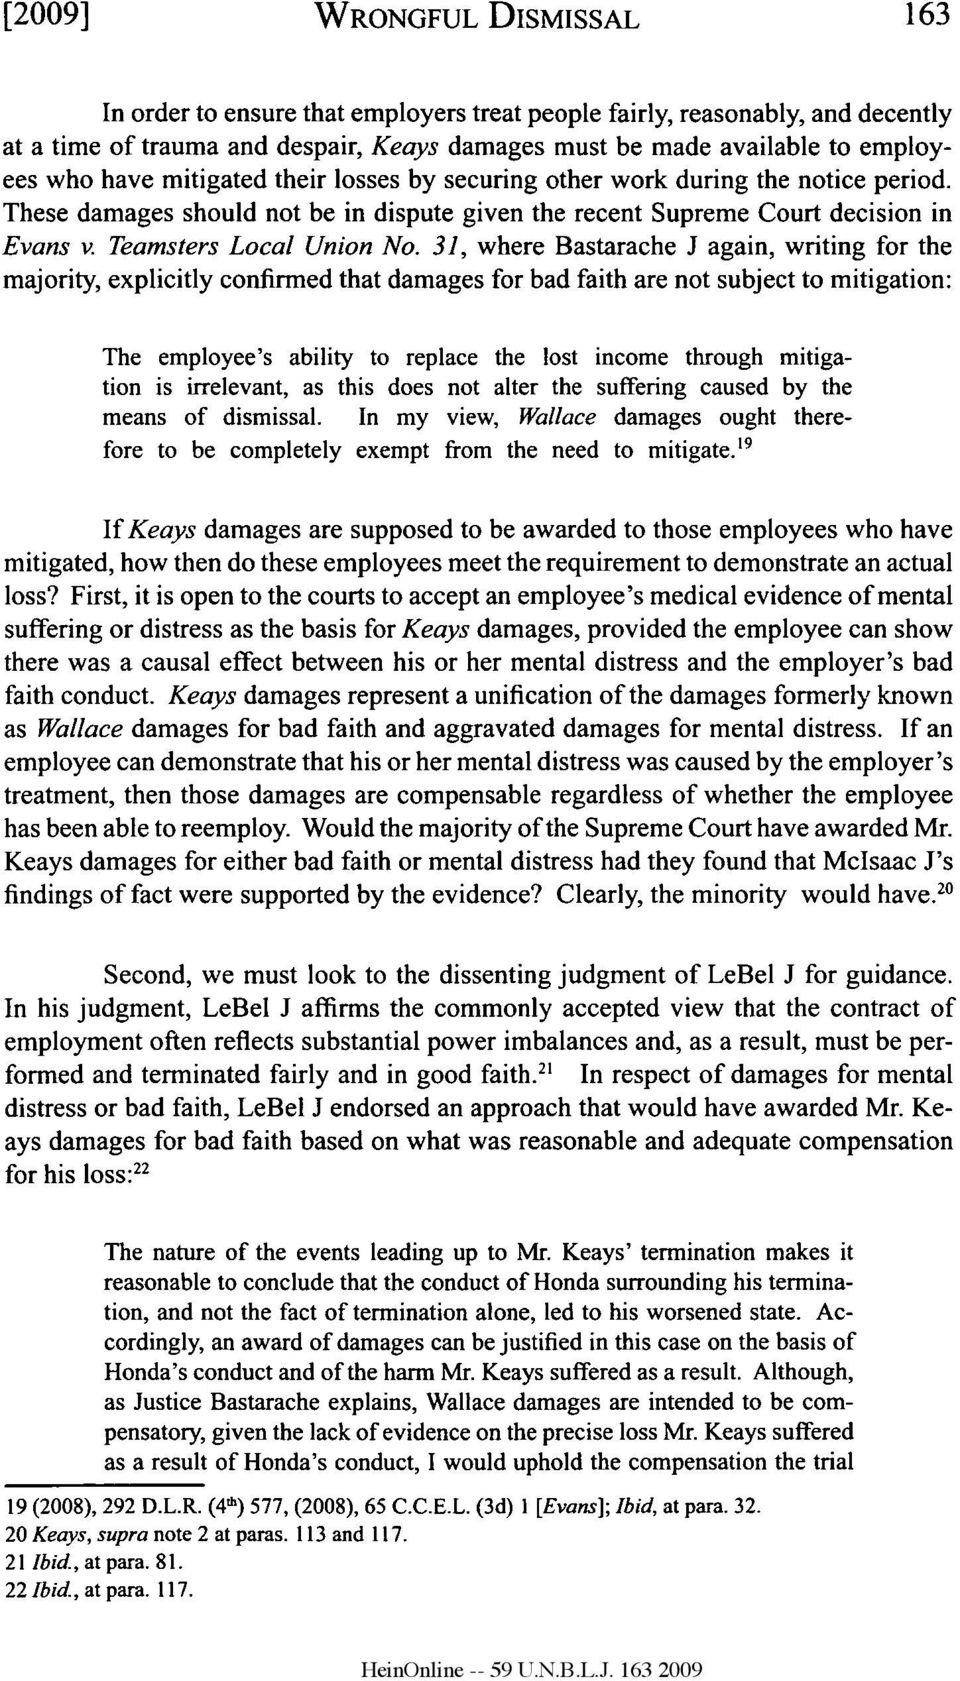 31, where Bastarache J again, writing for the majority, explicitly confirmed that damages for bad faith are not subject to mitigation: The employee's ability to replace the lost income through